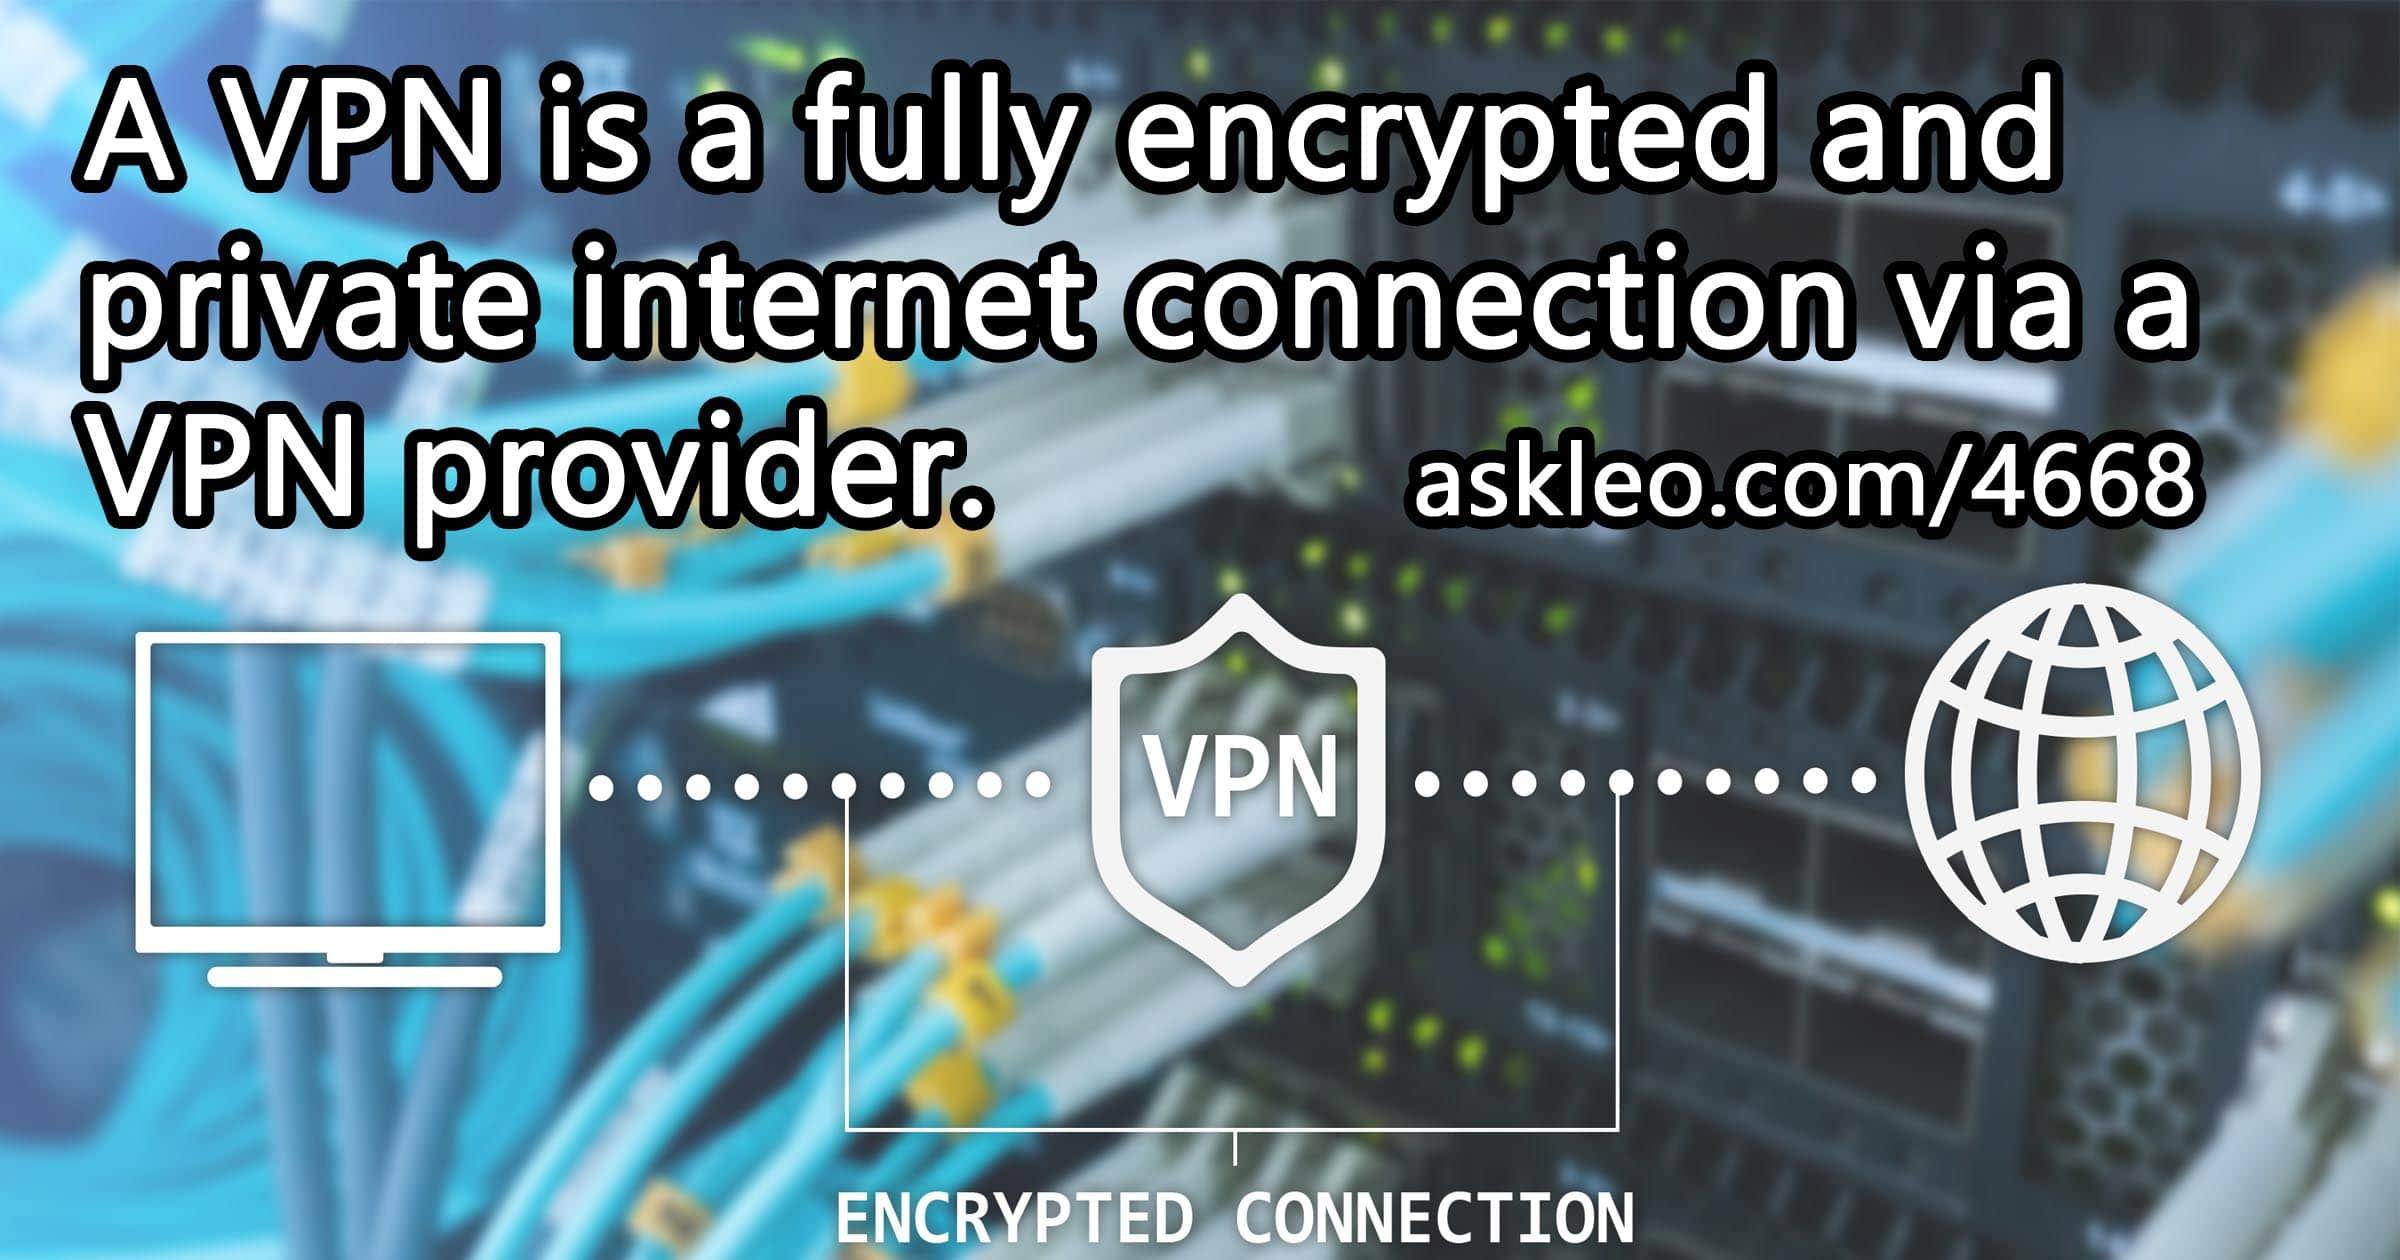 How does a VPN protect me?